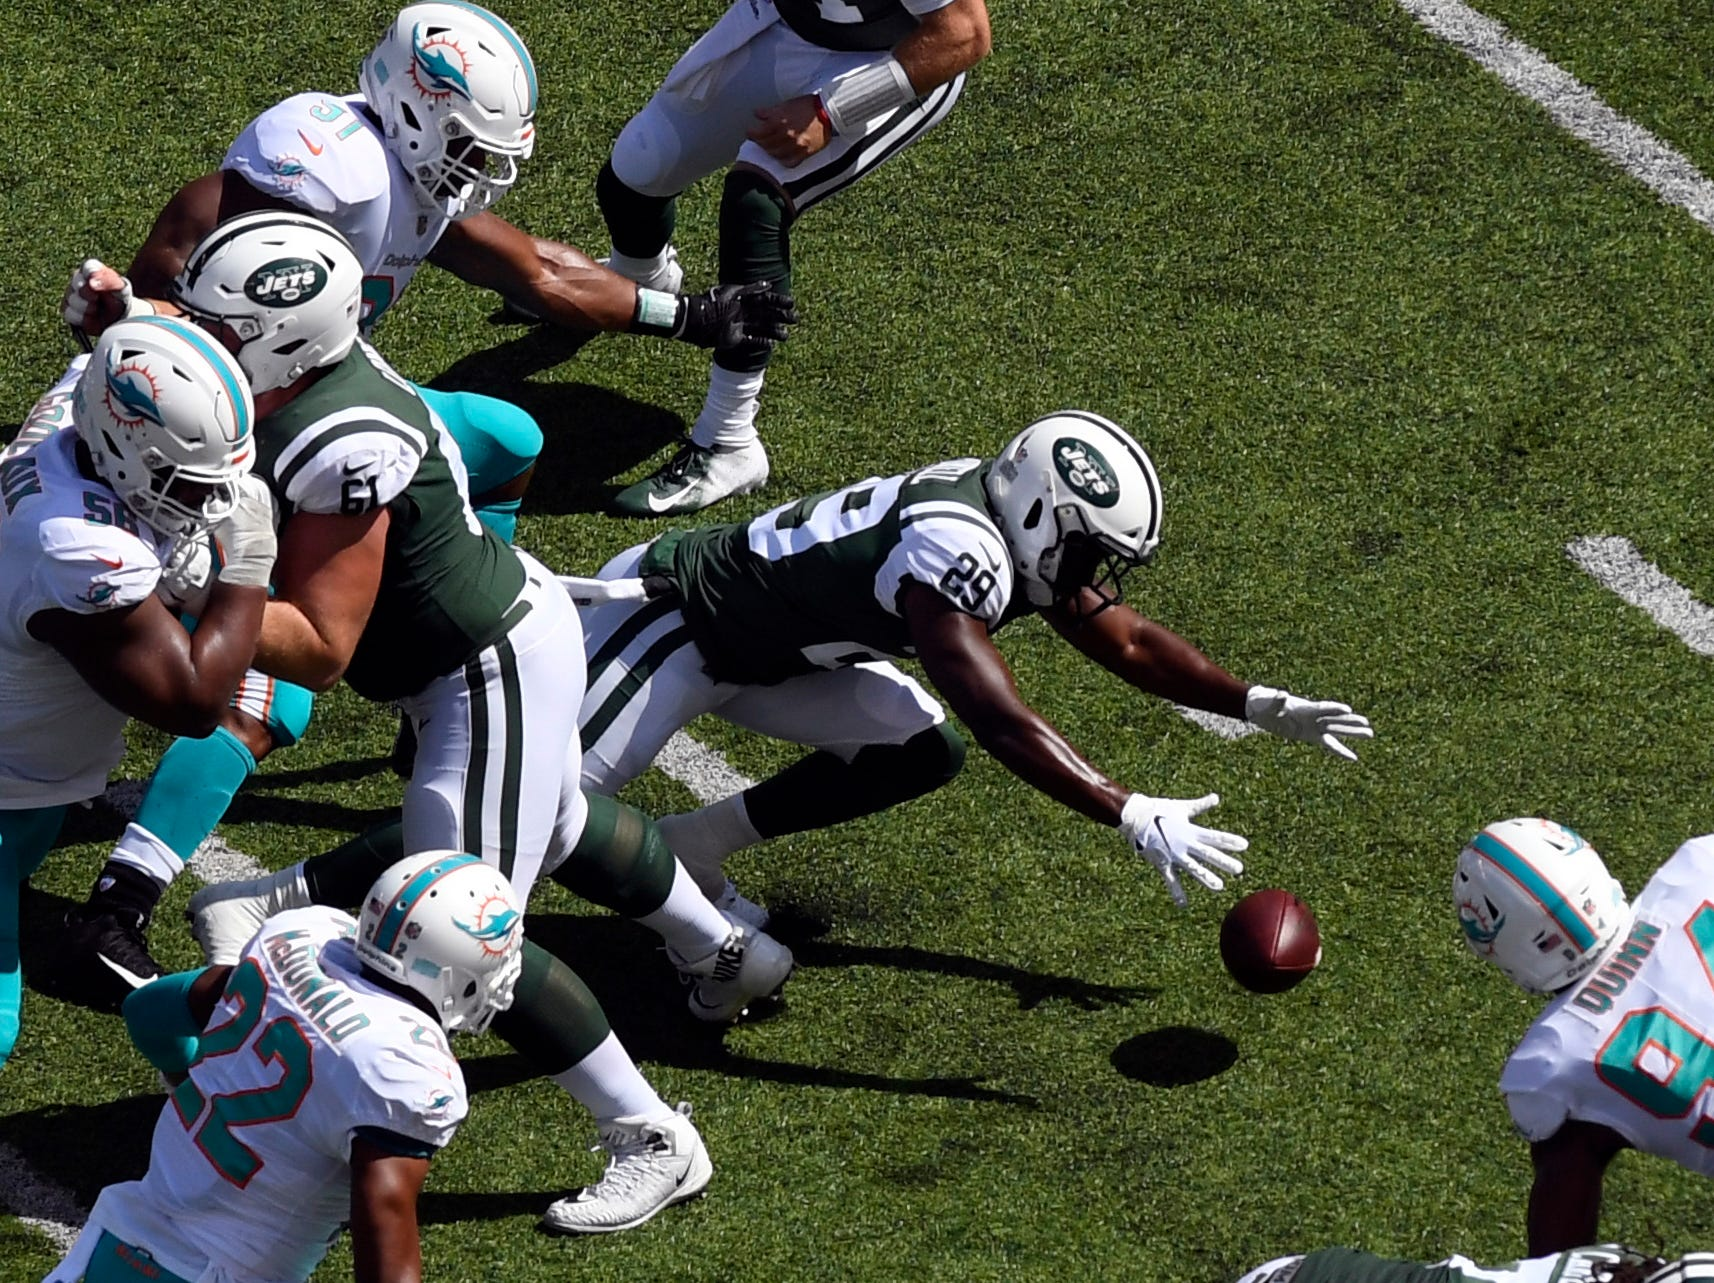 New York Jets running back Bilal Powell (29) fumbles and recovers the ball against the Miami Dolphins in Week 2 at MetLife Stadium in East Rutherford, NJ on Sunday, September 16, 2018.